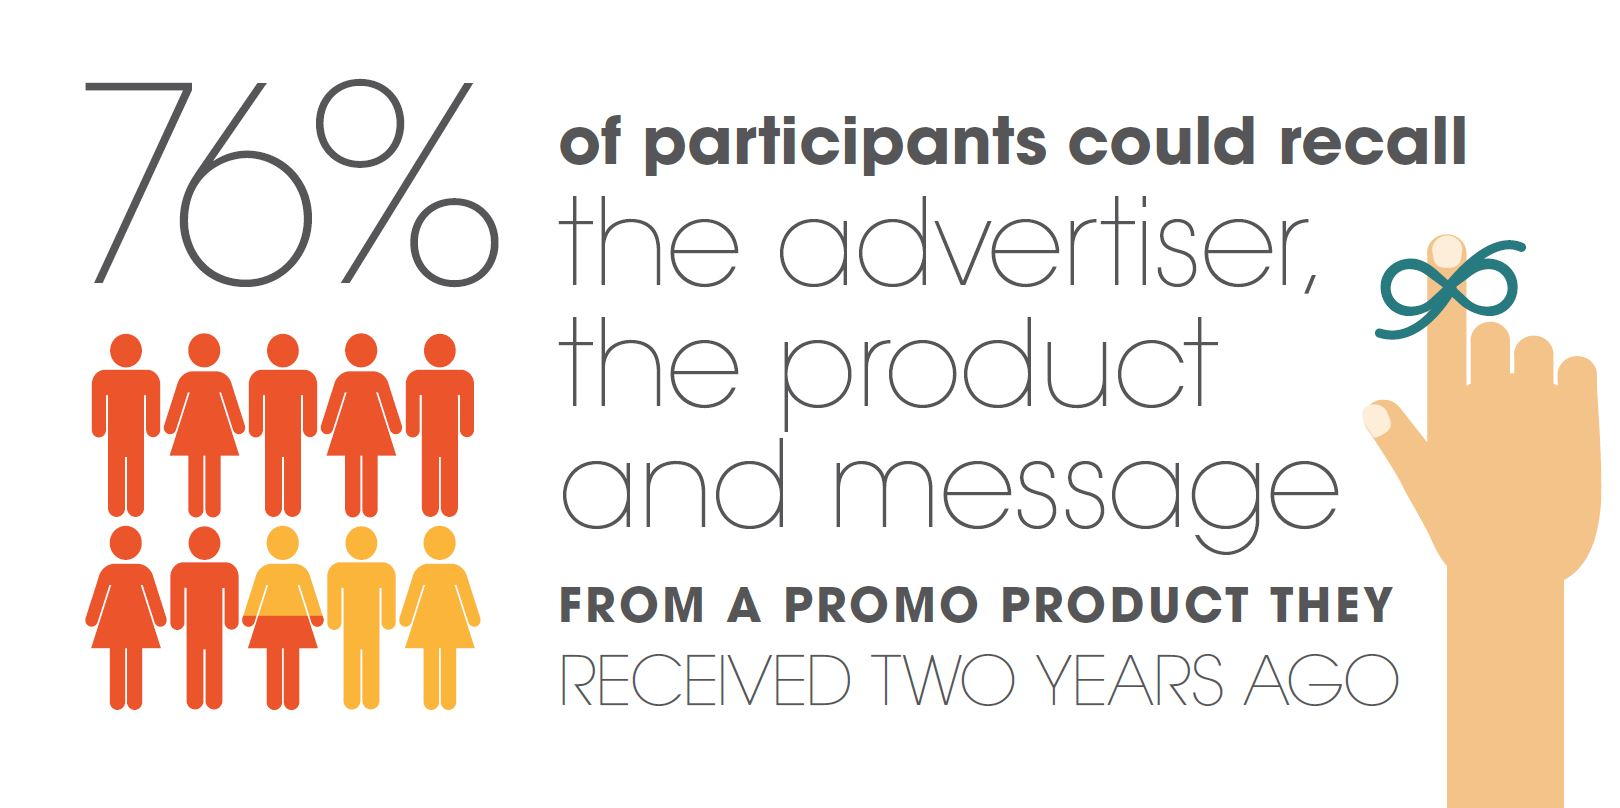 Promotional Products Increase Brand Recognition